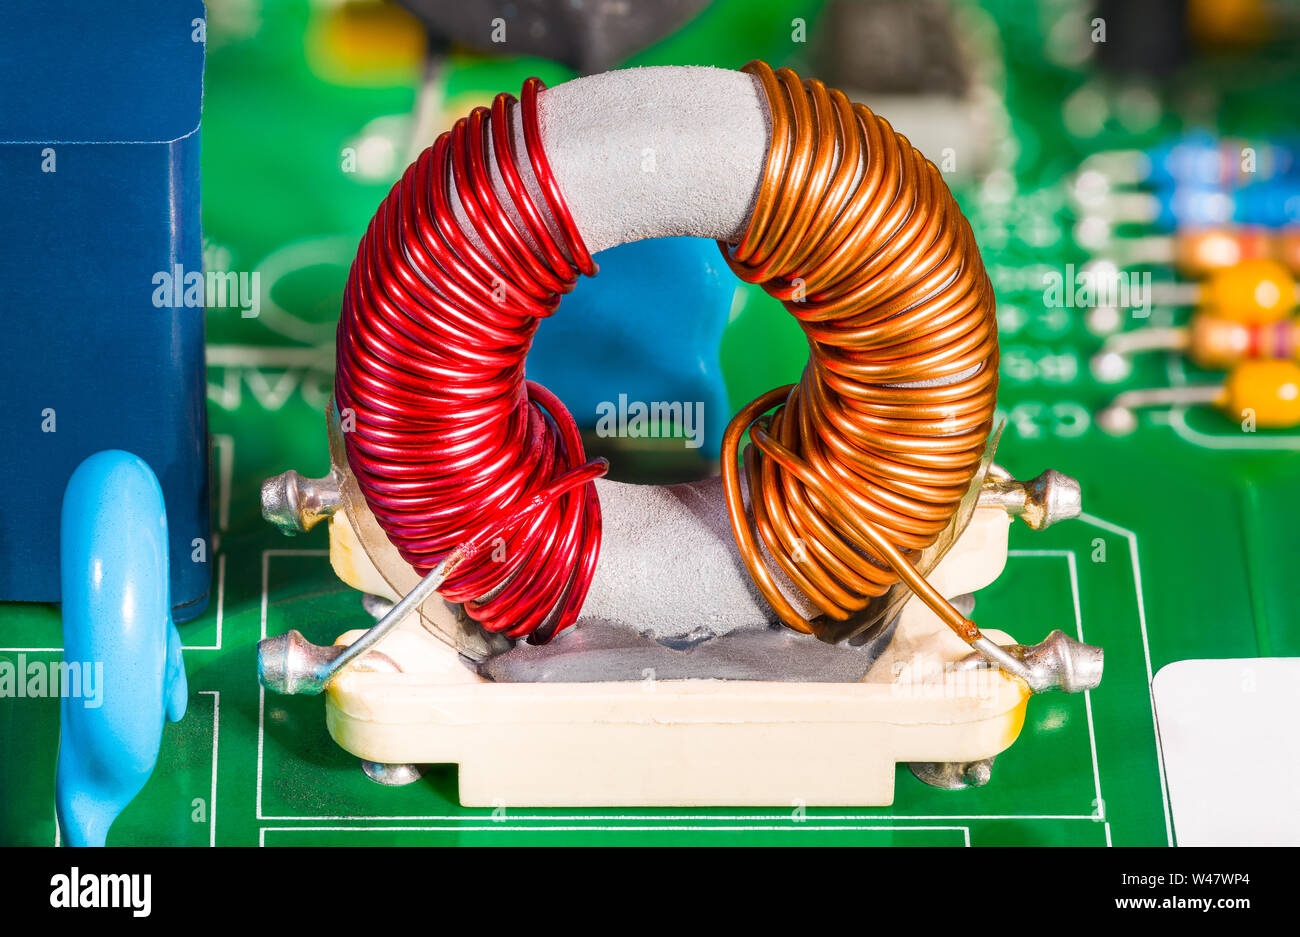 Inductor Stock Photos & Inductor Stock Images - Alamy